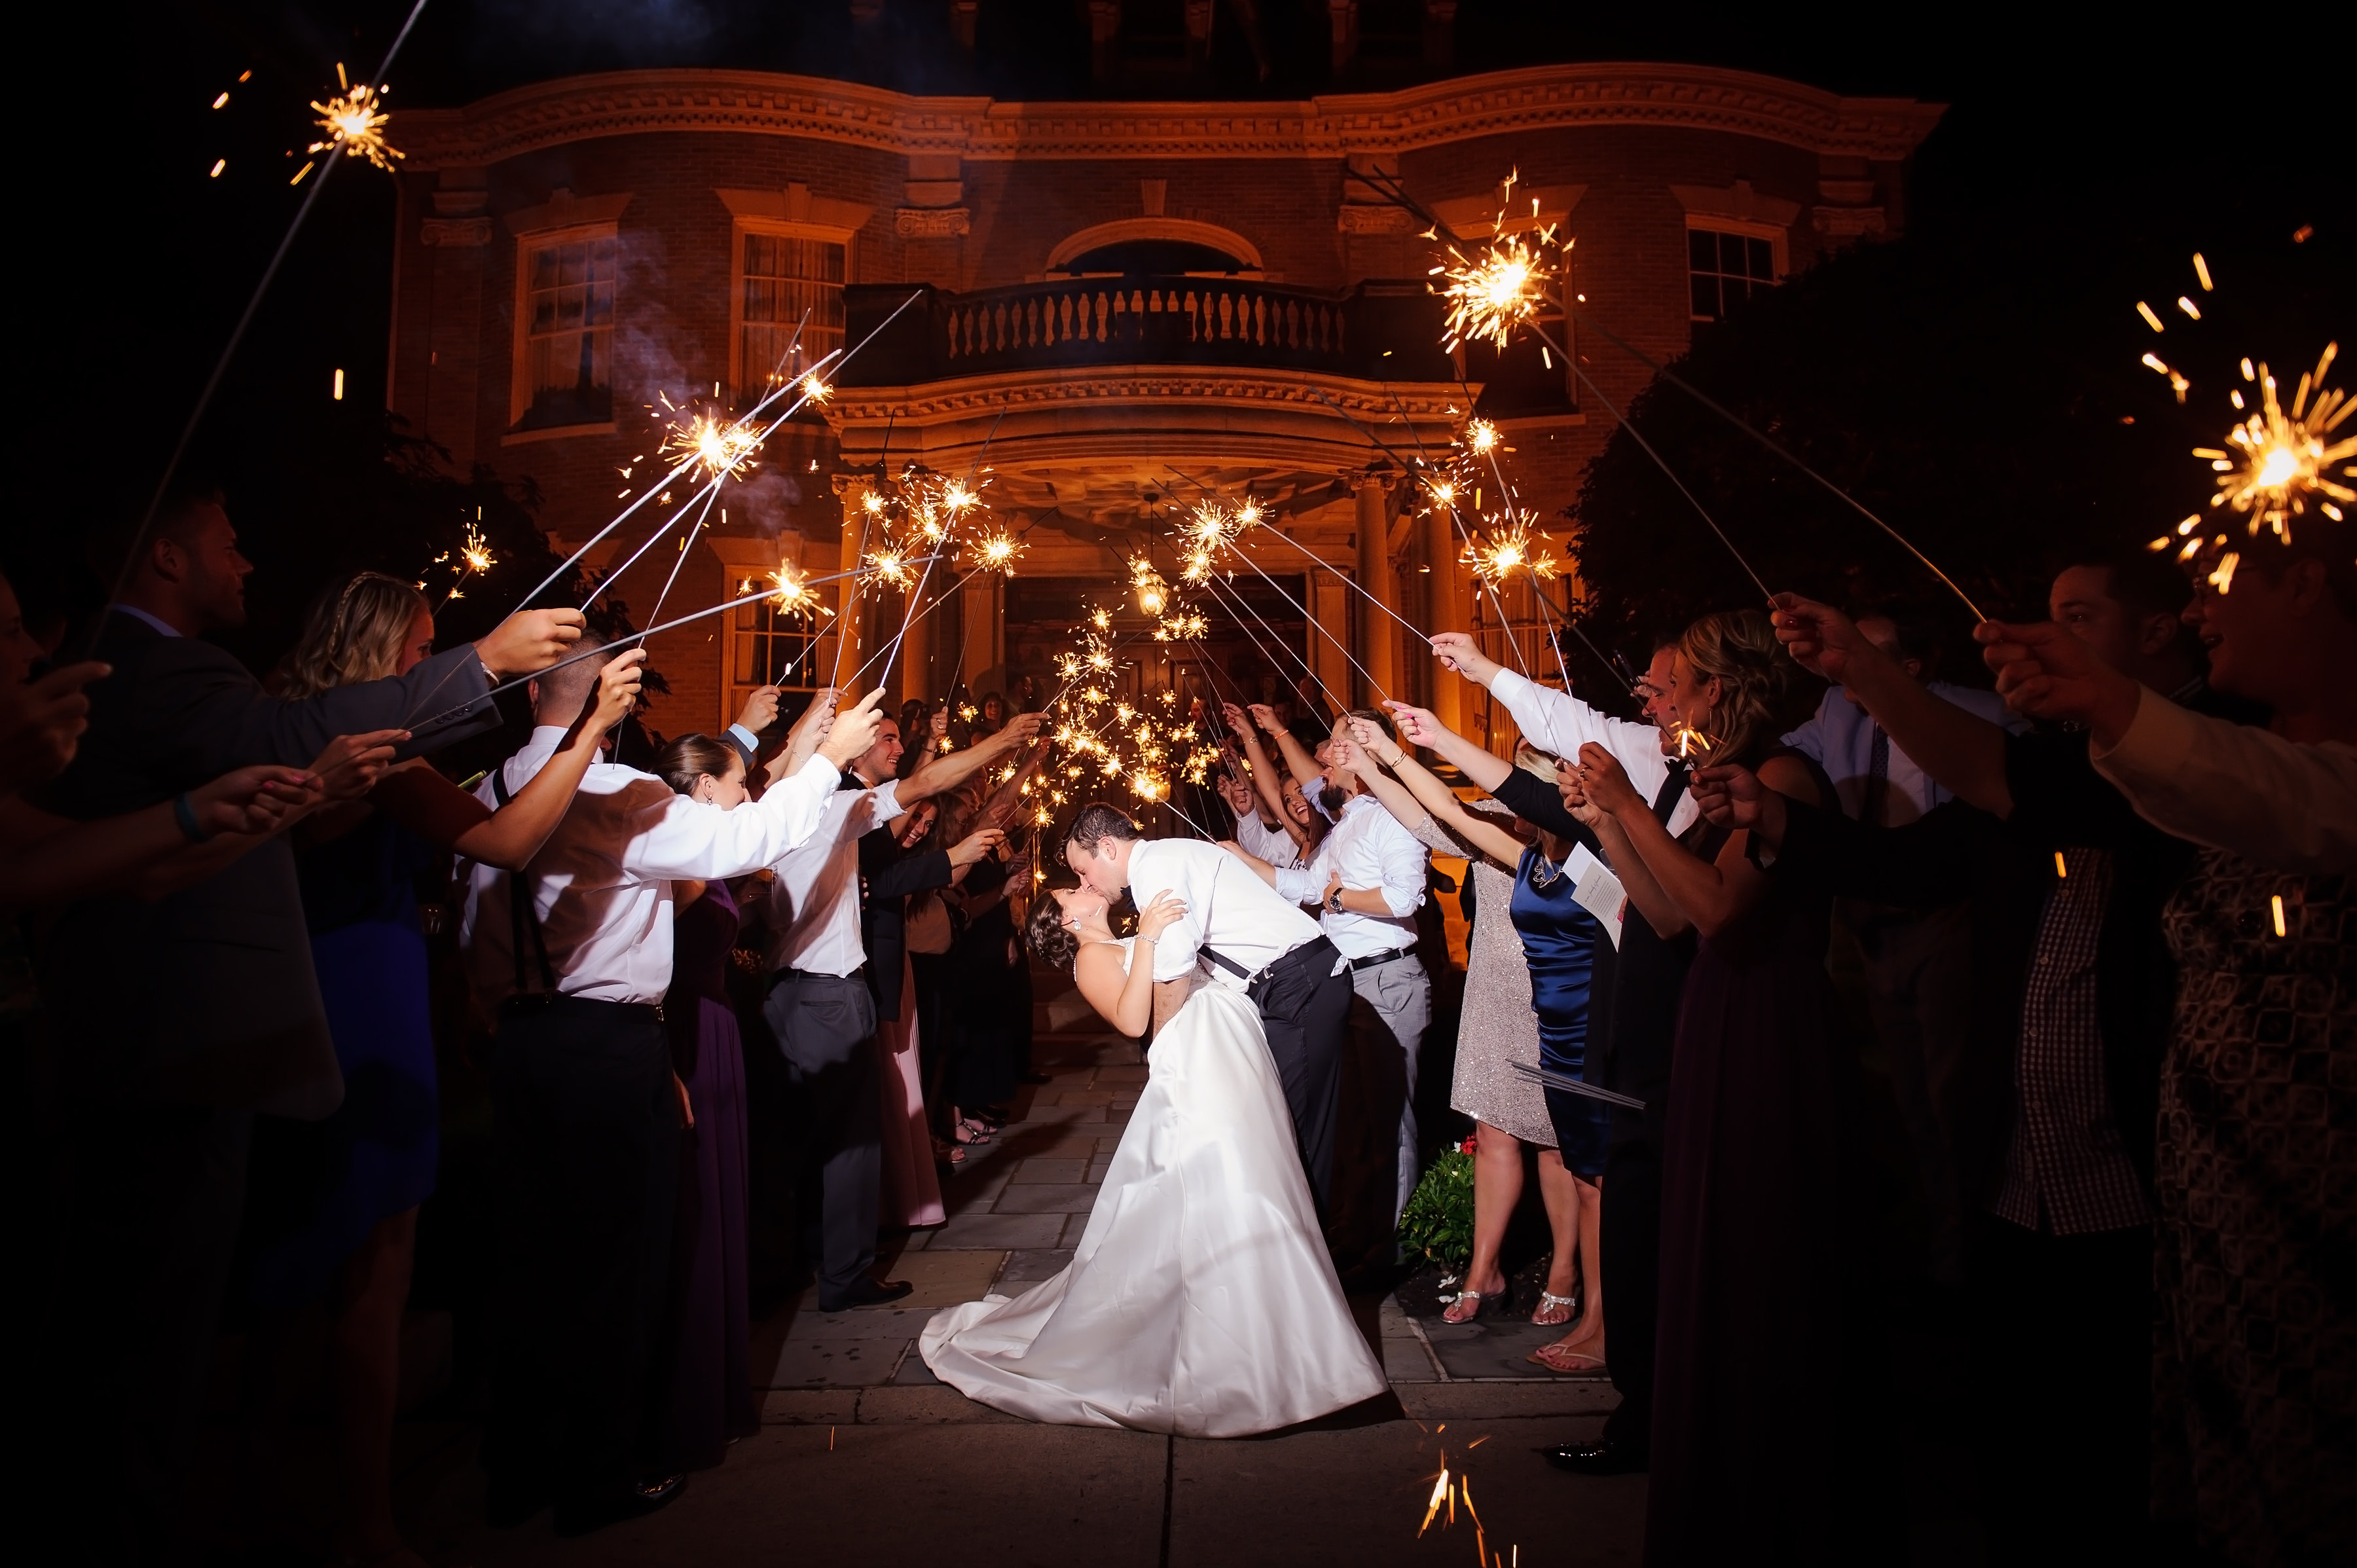 Wedding Sparklers The Inexpensive Way For Guests To Have Fun Wedding Sparklers Outlet Blog